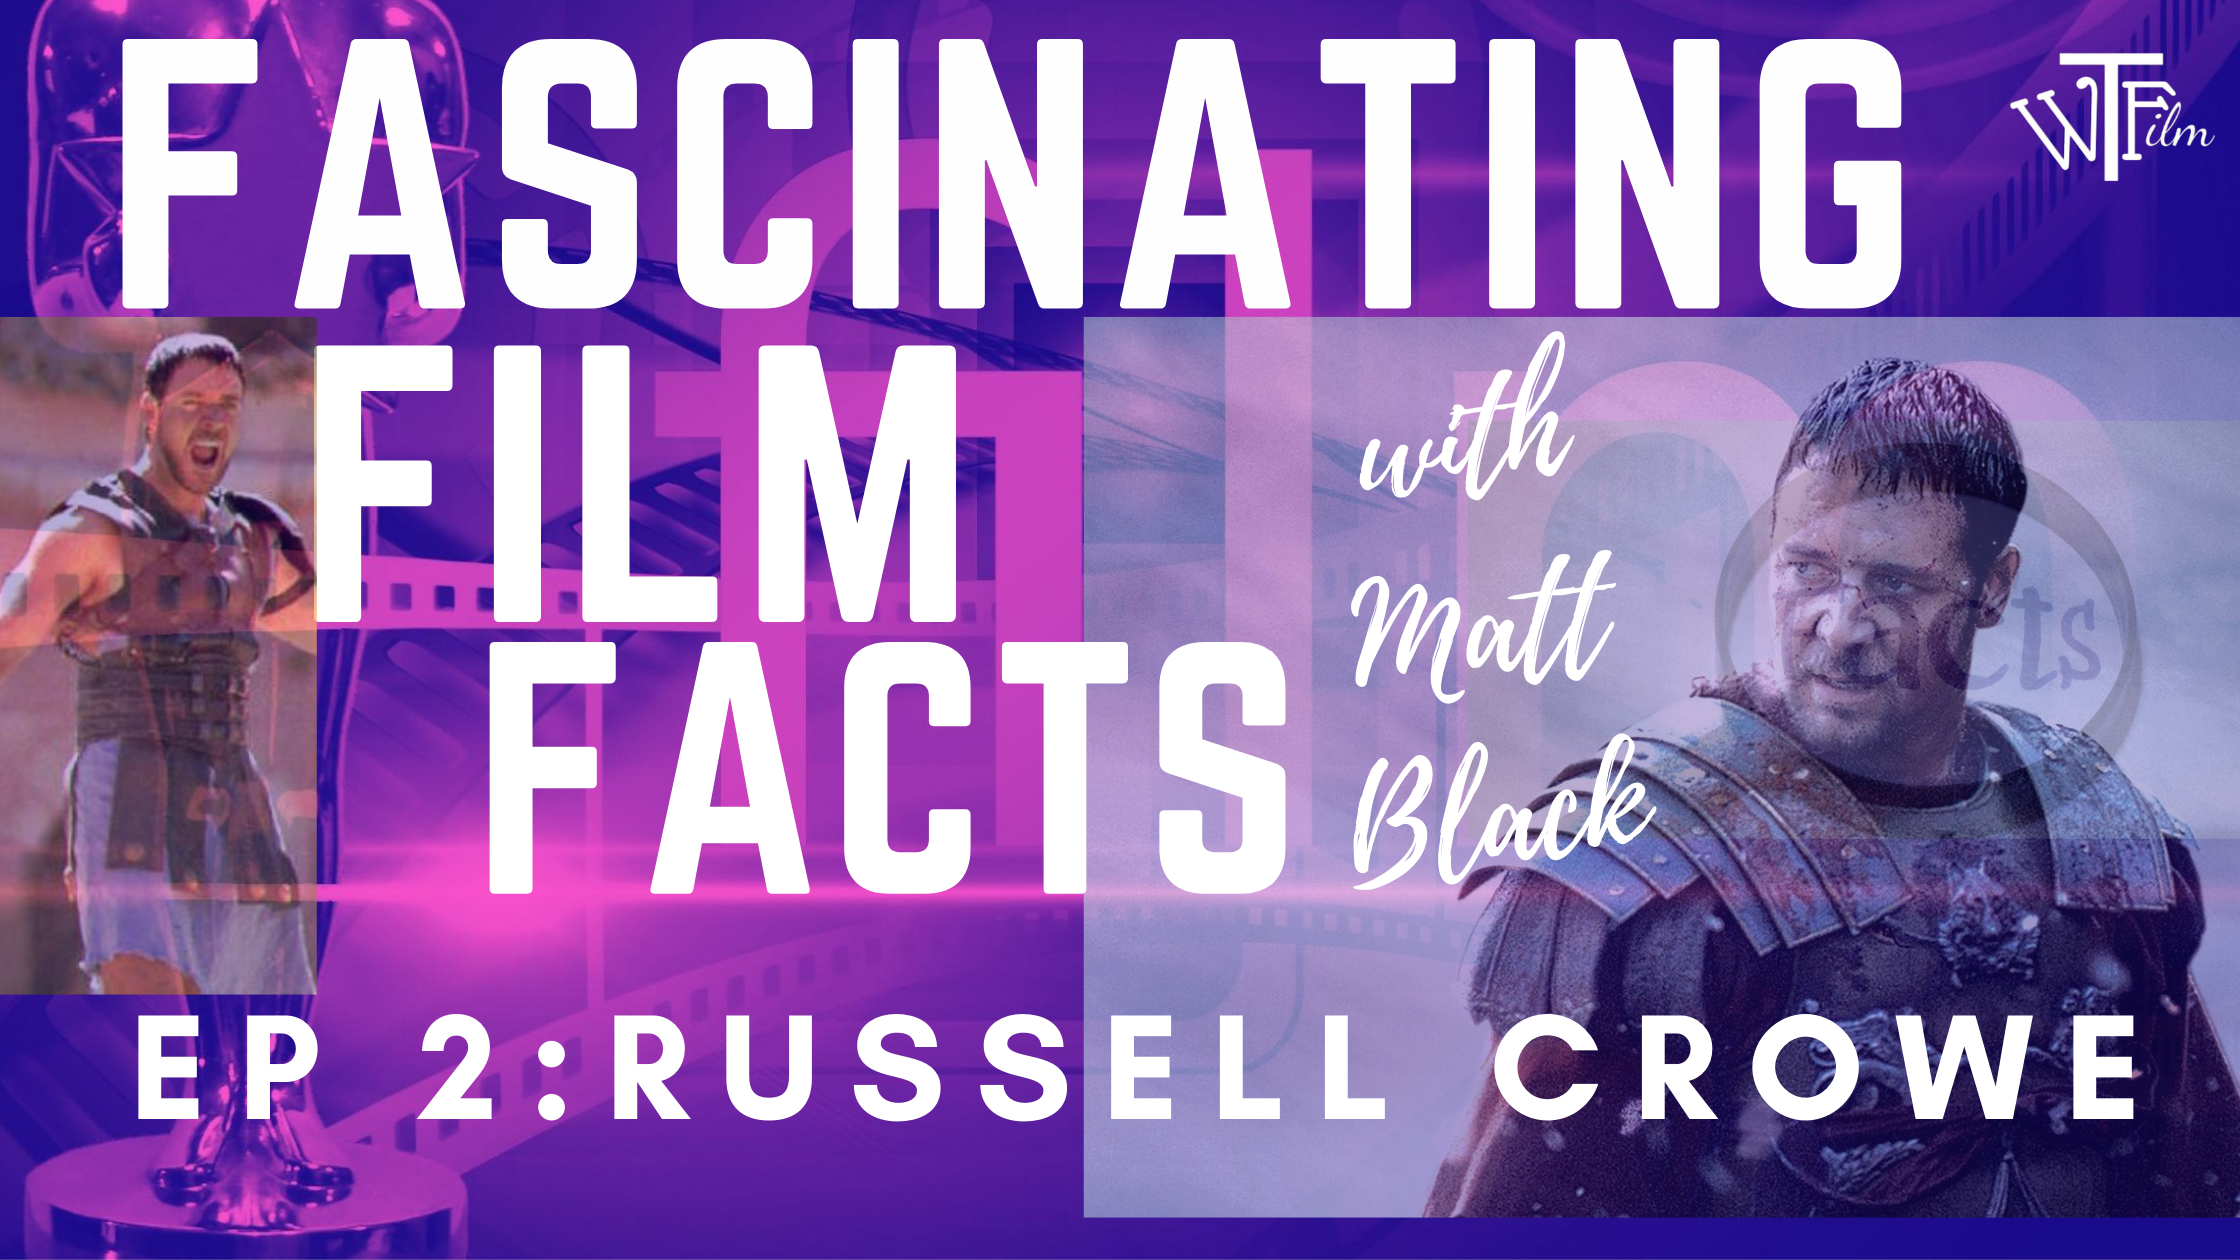 fascinating film facts about Russell Crowe